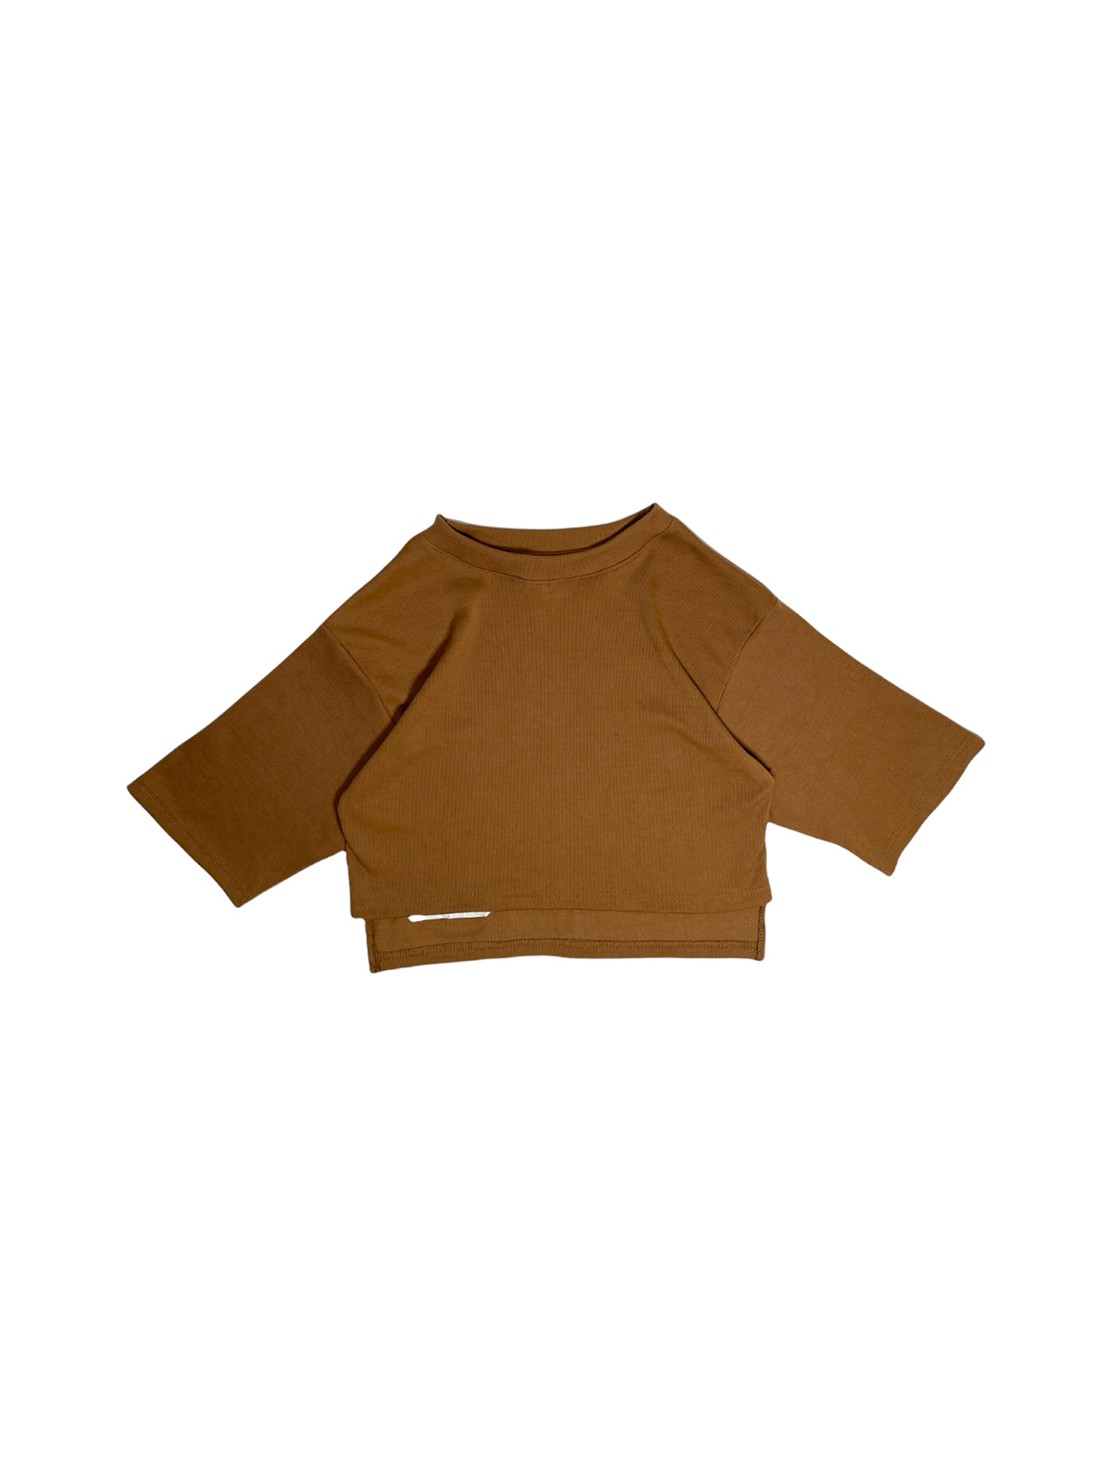 Aster (Brown)